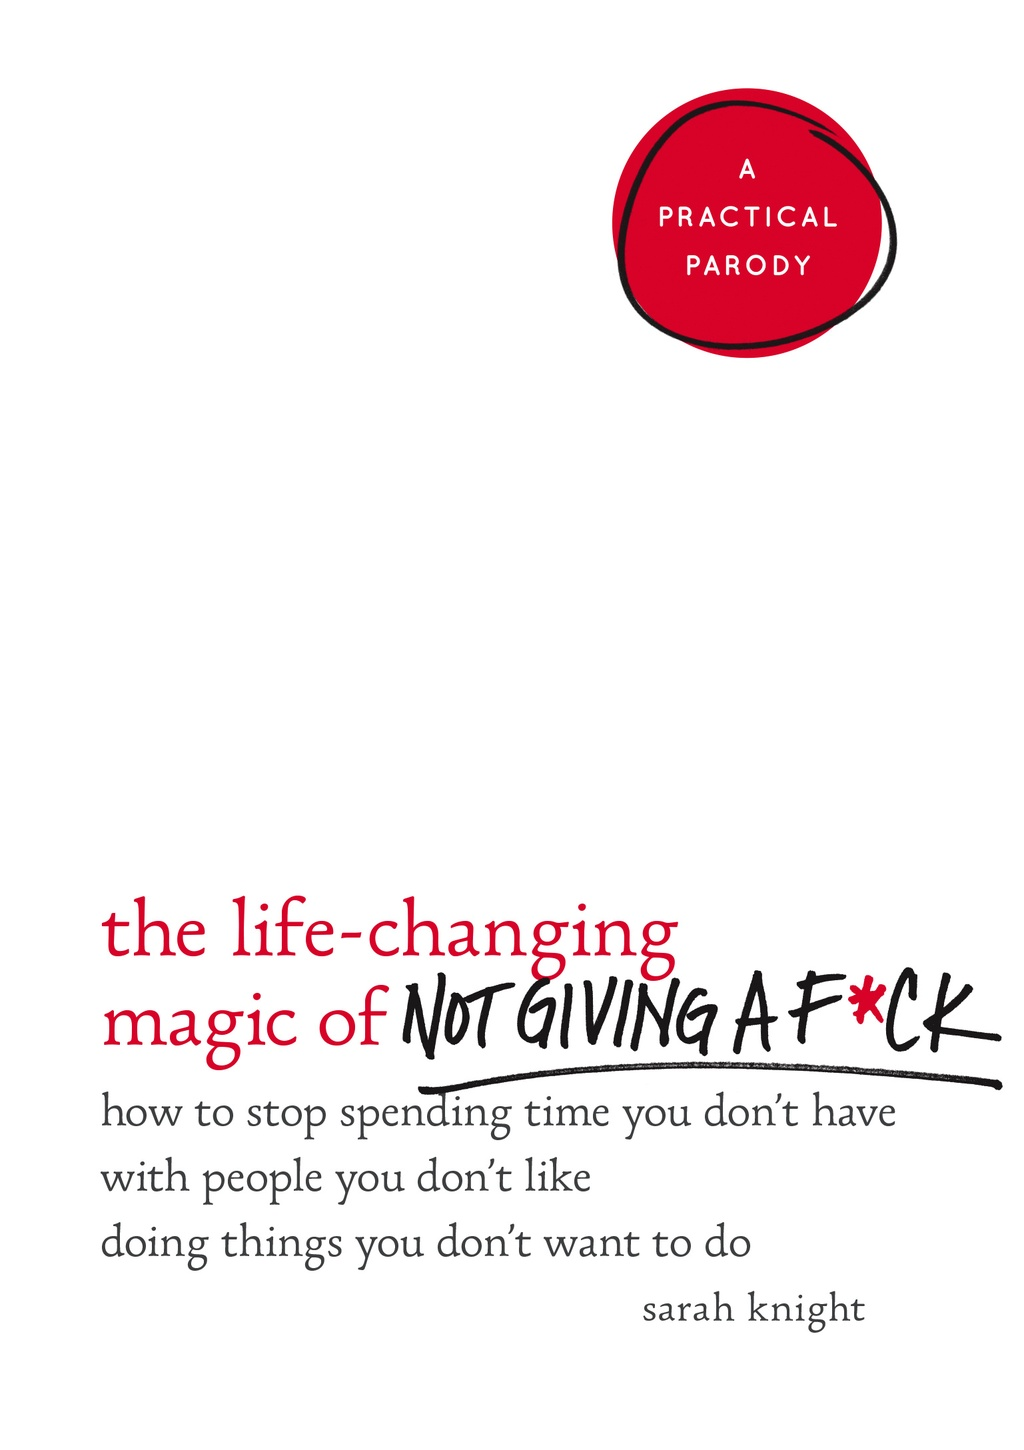 The Life-Changing Magic of Not Giving A F*ck  Author- Sarah Knight  Published by: Quercus  Genres: humour, psychology,   Available at: waterstones.com